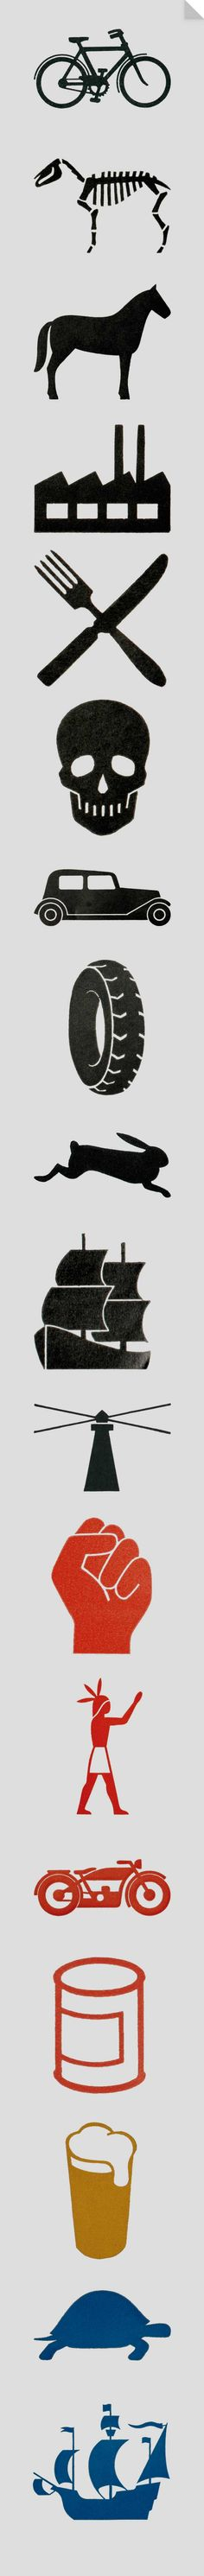 Gerd Arntz was a German modernist who created over 500 icons, or isotypes, with… Logo Design Love, Icon Design, Branding Design, Web Archive, Graphic Design Lessons, Brand Icon, Clear Communication, Data Visualisation, Photoshop